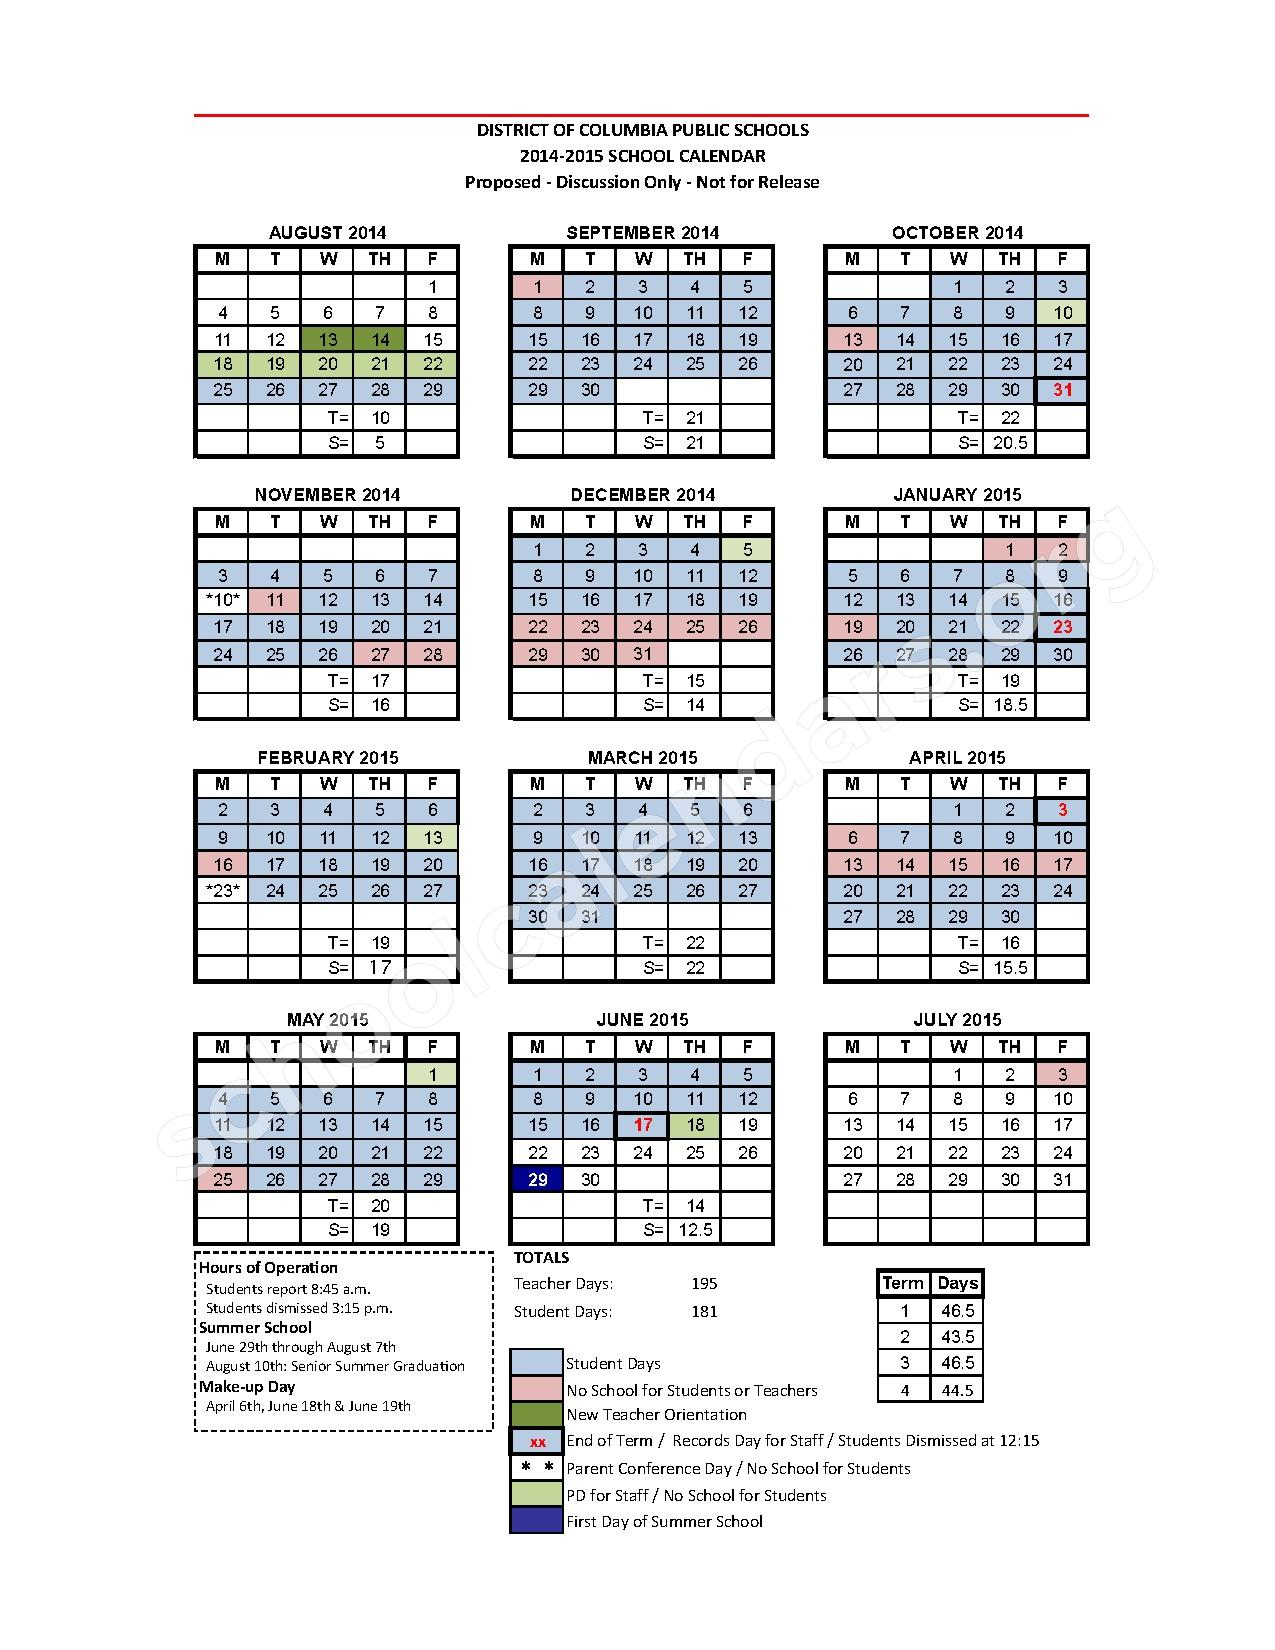 Enchanting Elementary School Calendar Template Pictures - Examples ...